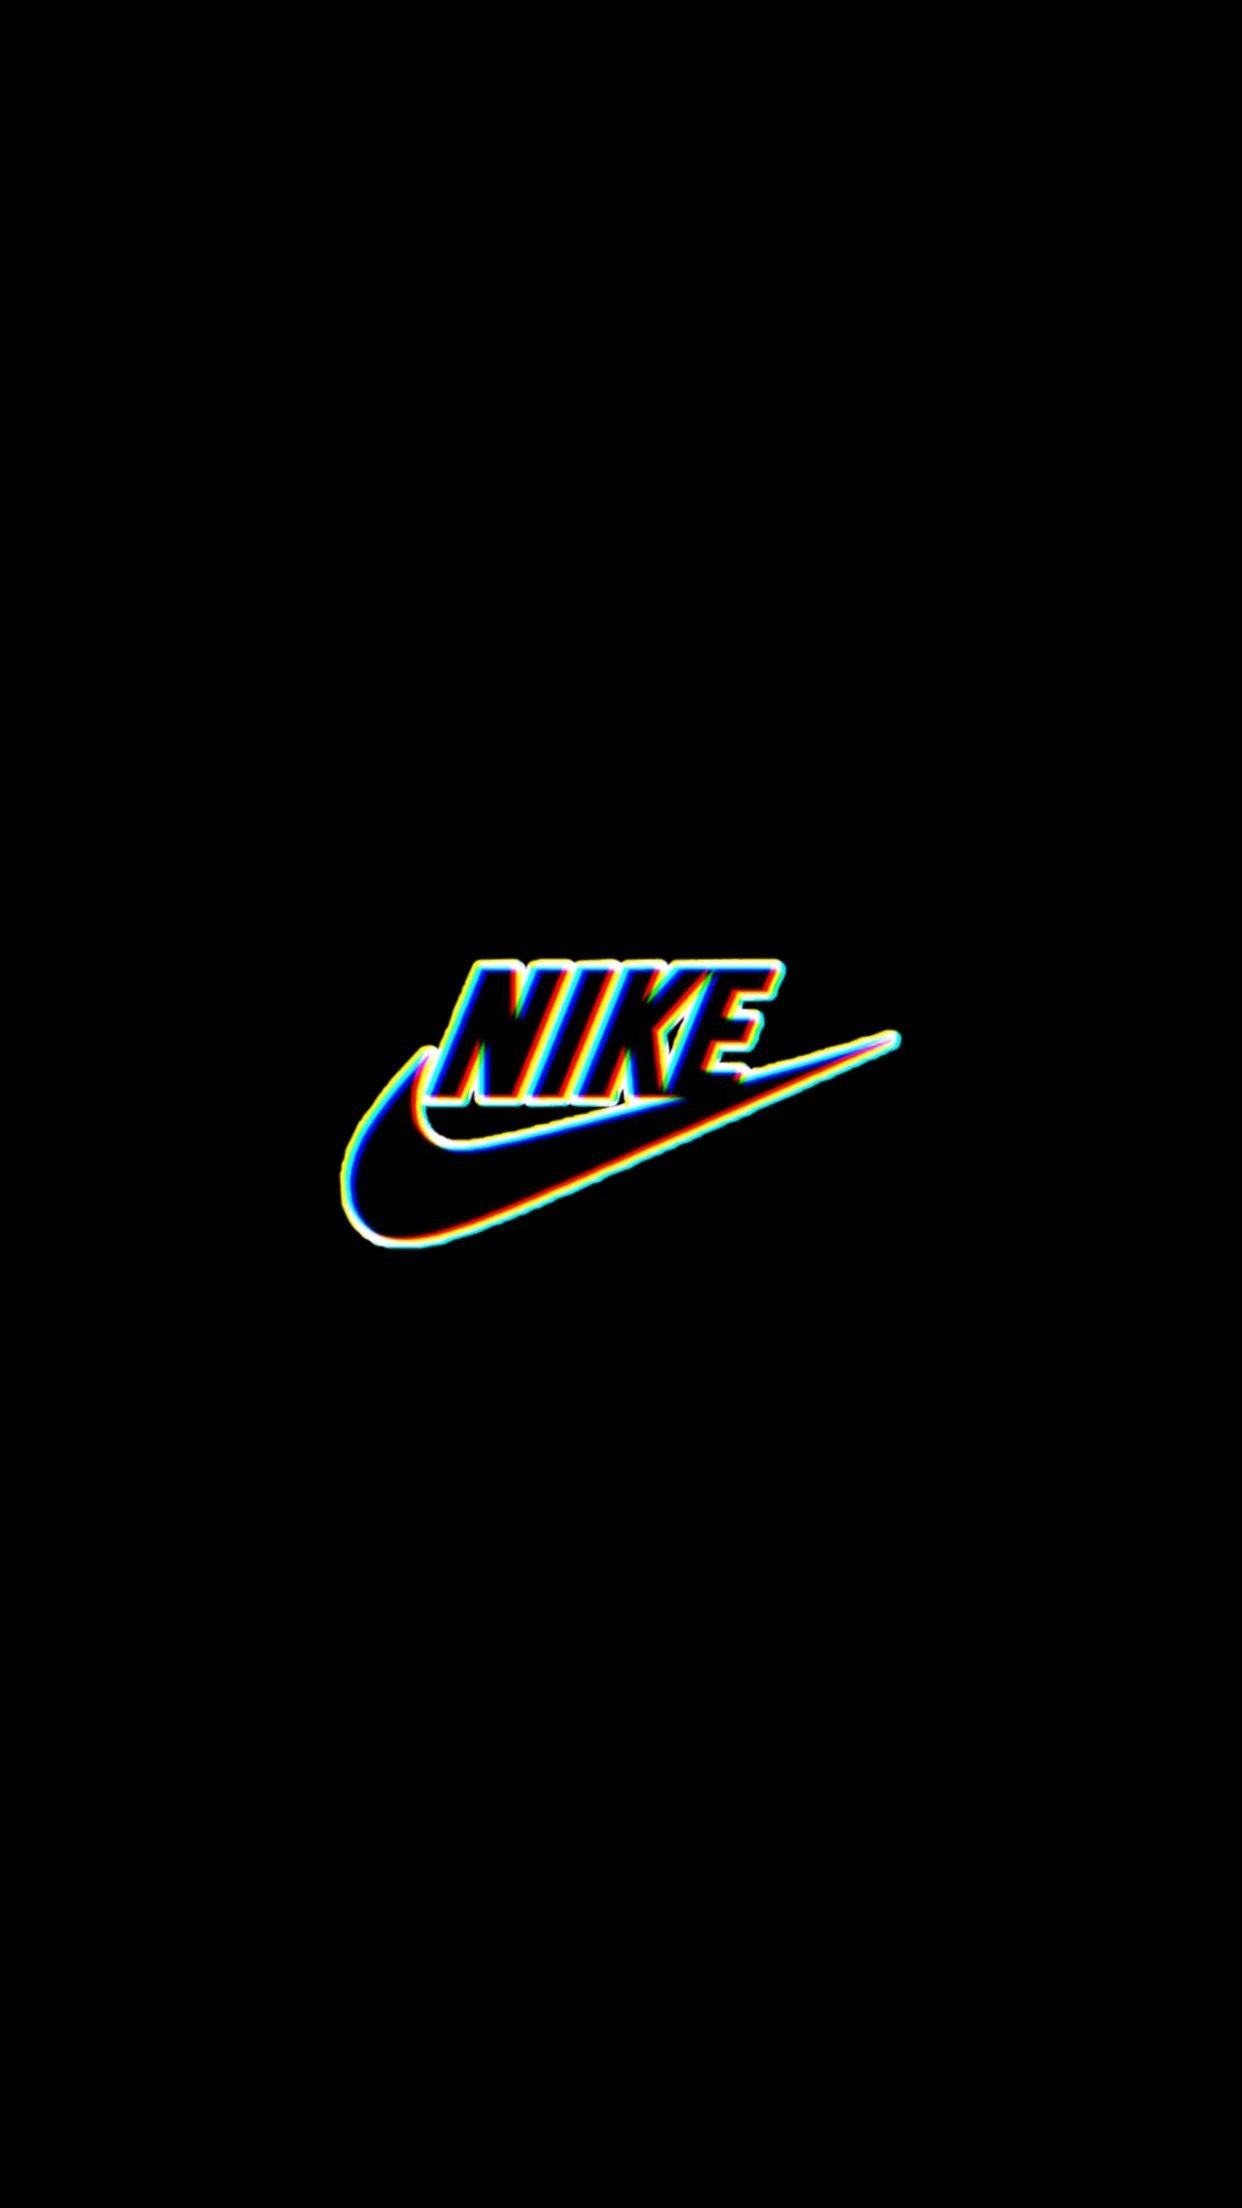 Res: 1242x2208, Nike background, aesthetic wallpaper, aesthetic background, glitch,  wallpaper, iPhone wallpaper,